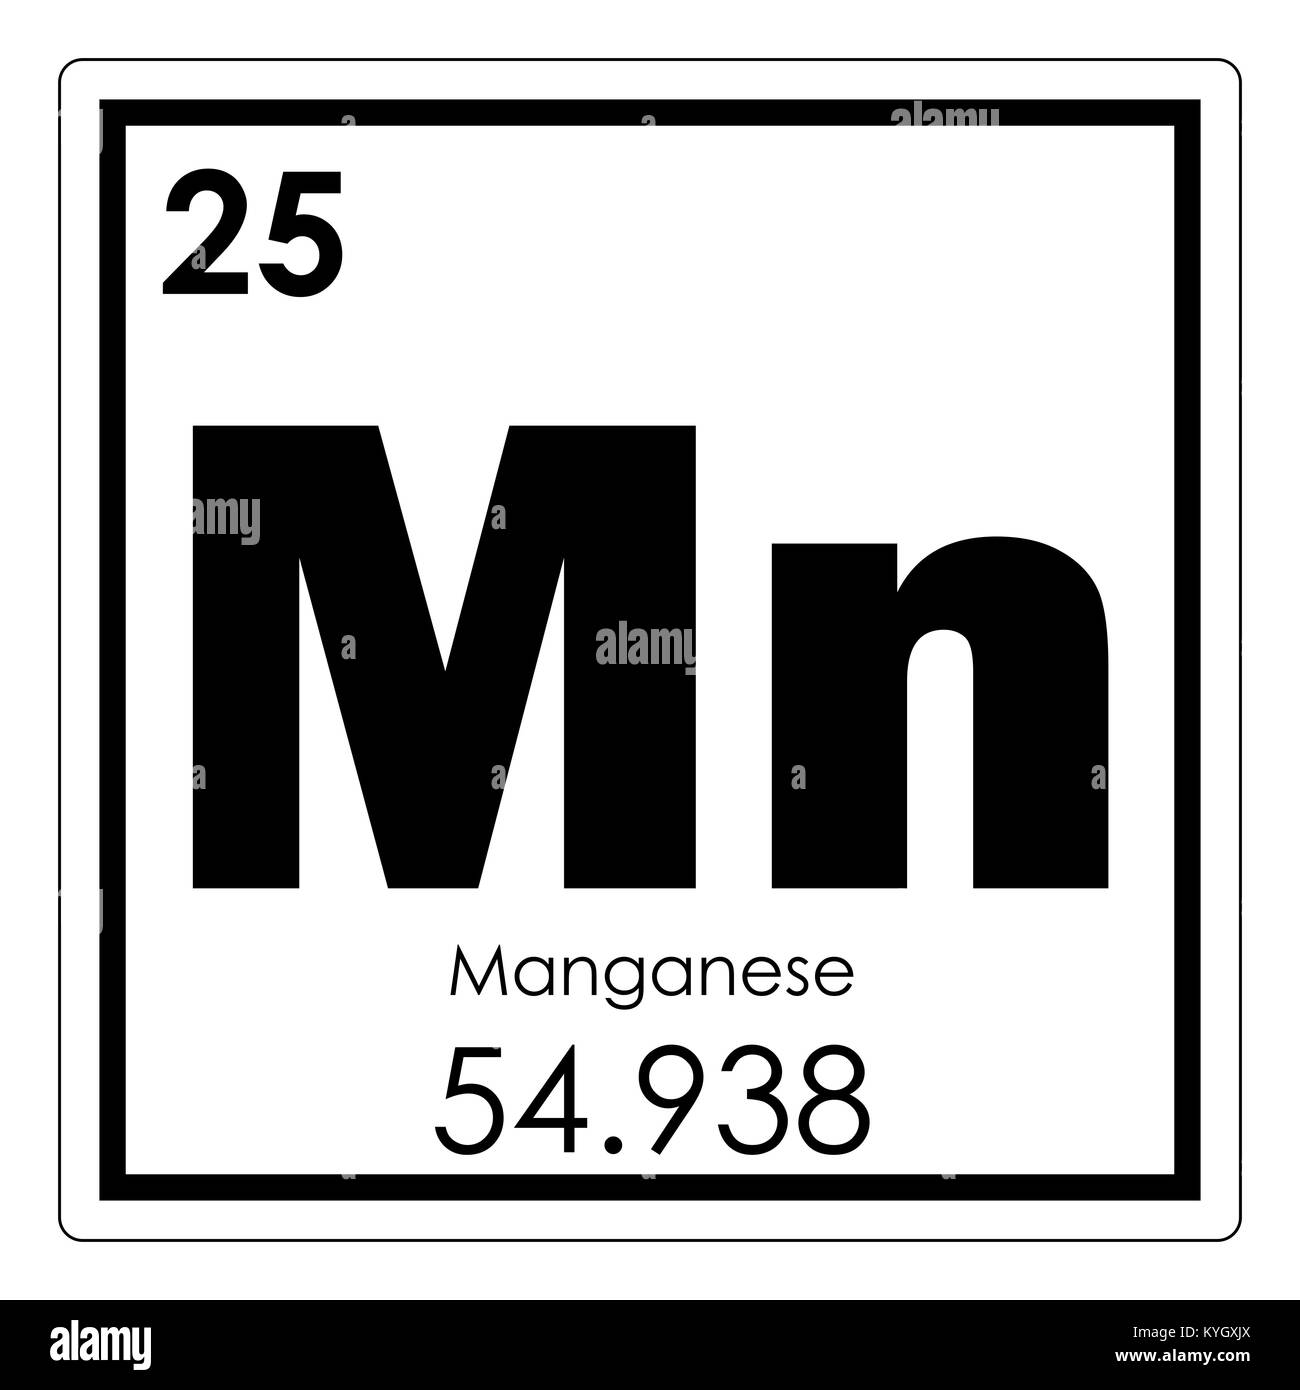 Manganese chemical element periodic table science symbol stock photo manganese chemical element periodic table science symbol urtaz Images